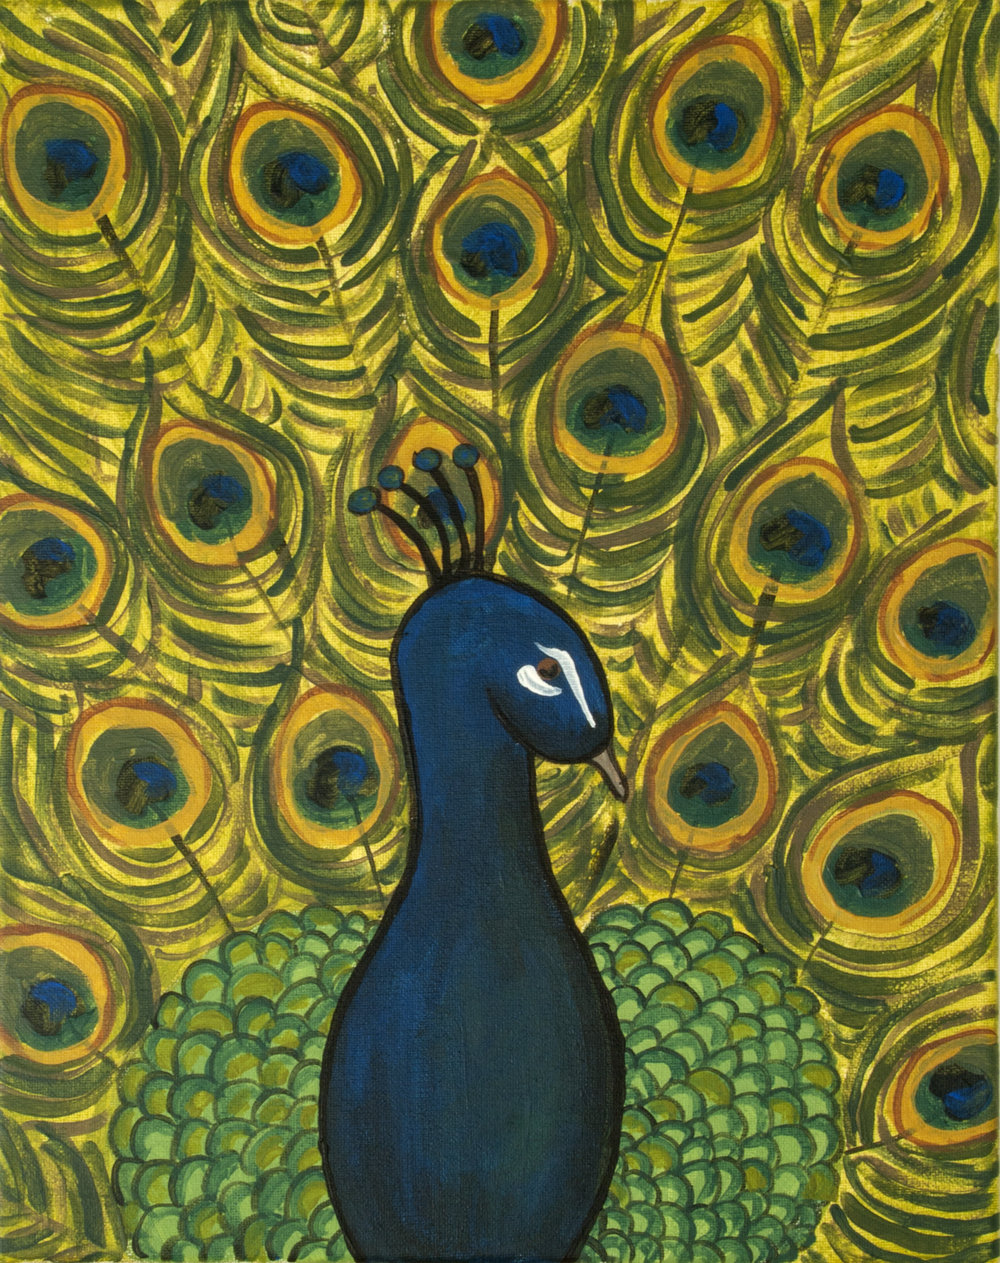 Selected Painting: The Peacock